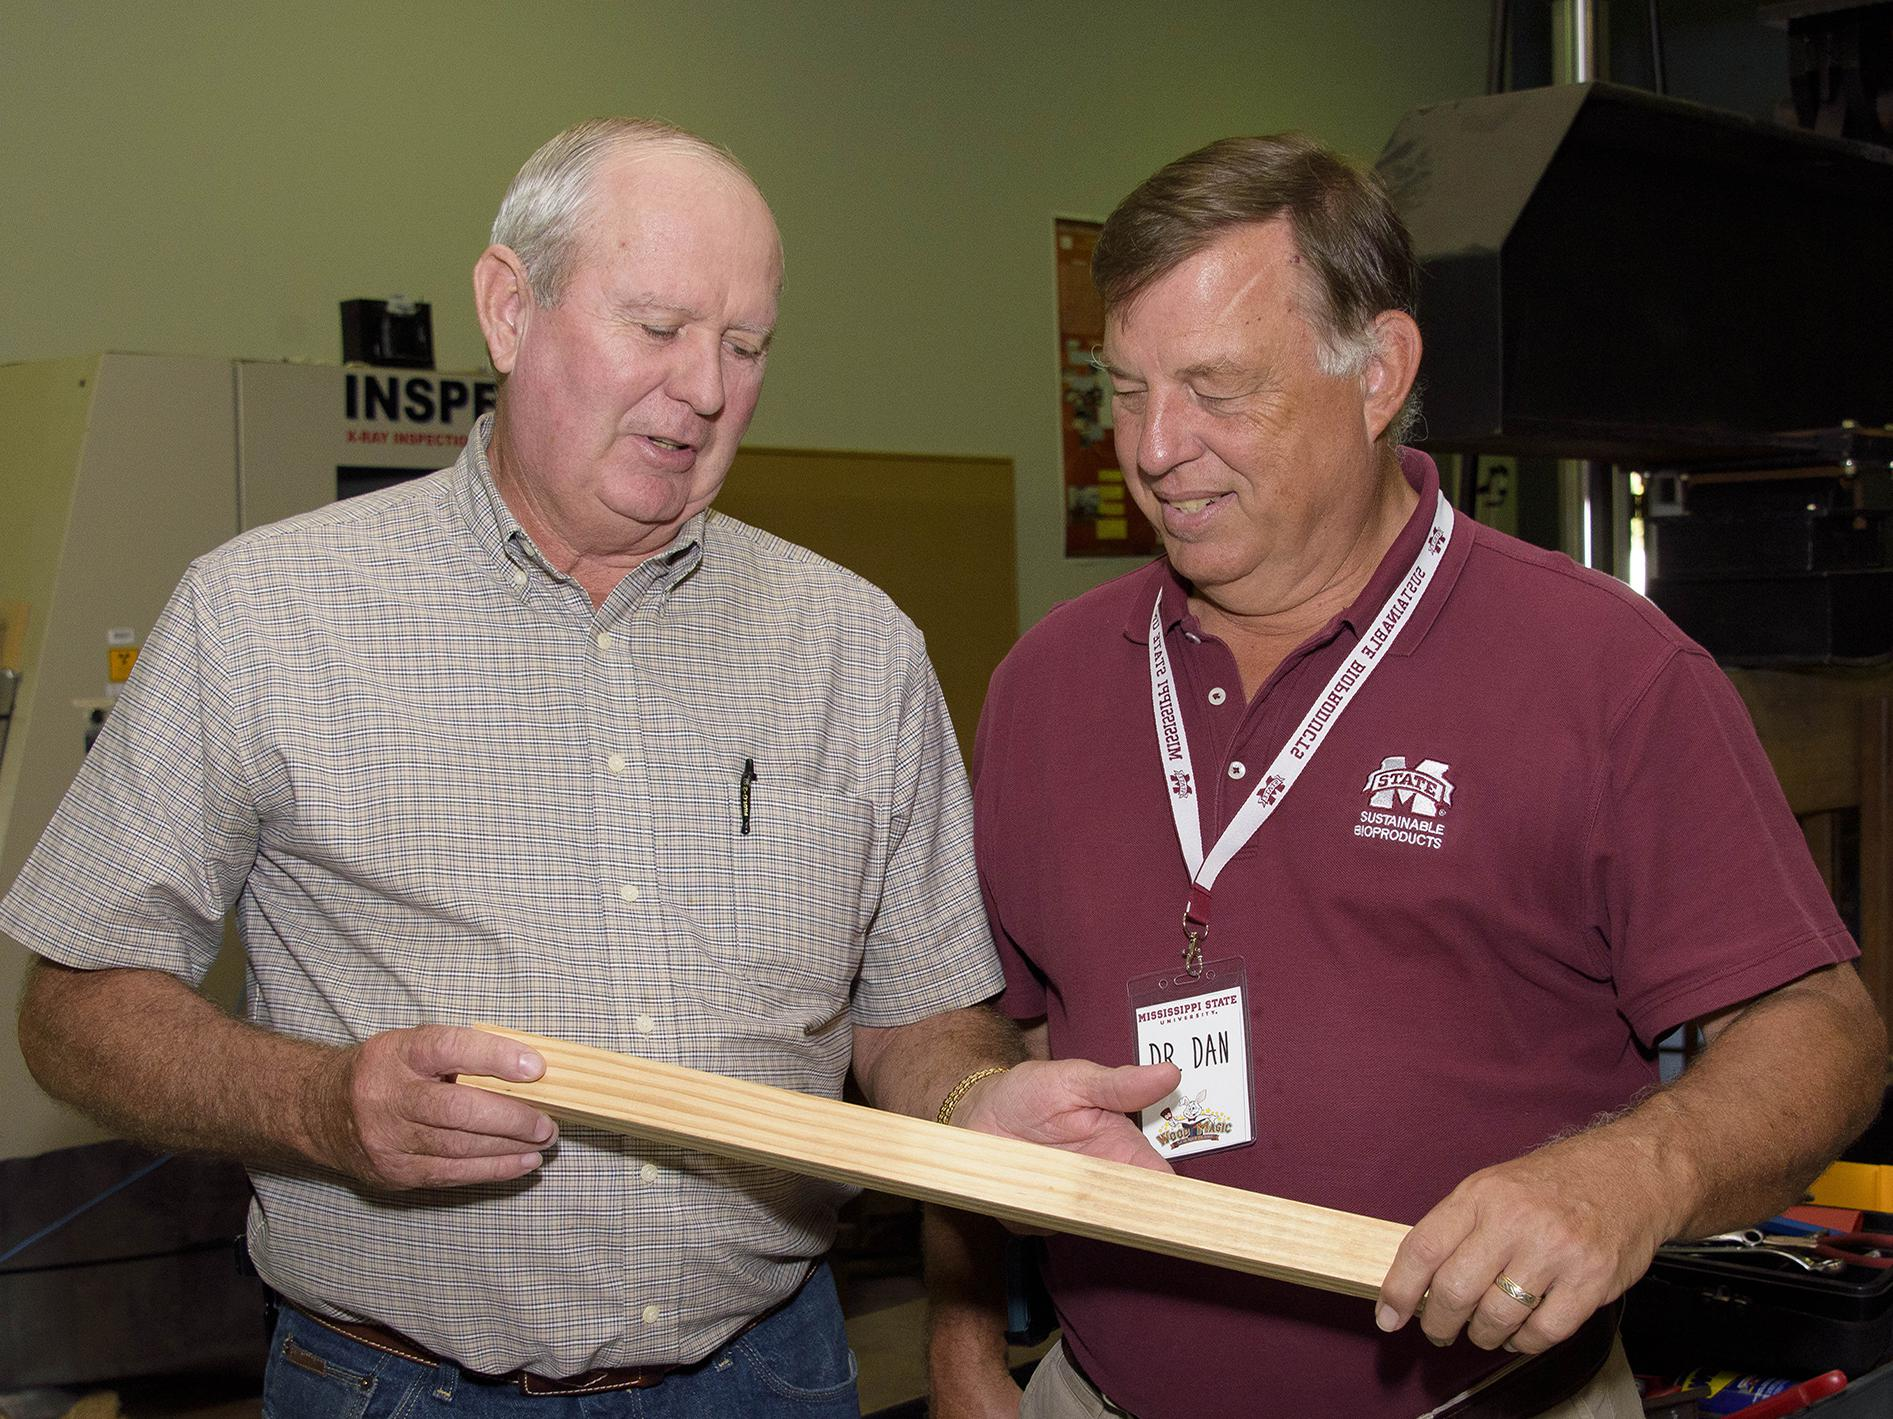 Mississippi Representative Ken Morgan of Marion County, left, examines a wood product held by Dan Seale, a professor of sustainable bioproducts at the R.T. Clapp Forest Products Lab at Mississippi State University. Morgan and other members of Senate and House agricultural committees visited MSU on Oct. 18 and 19, 2016. (Photo by MSU Extension Service/Kevin Hudson)